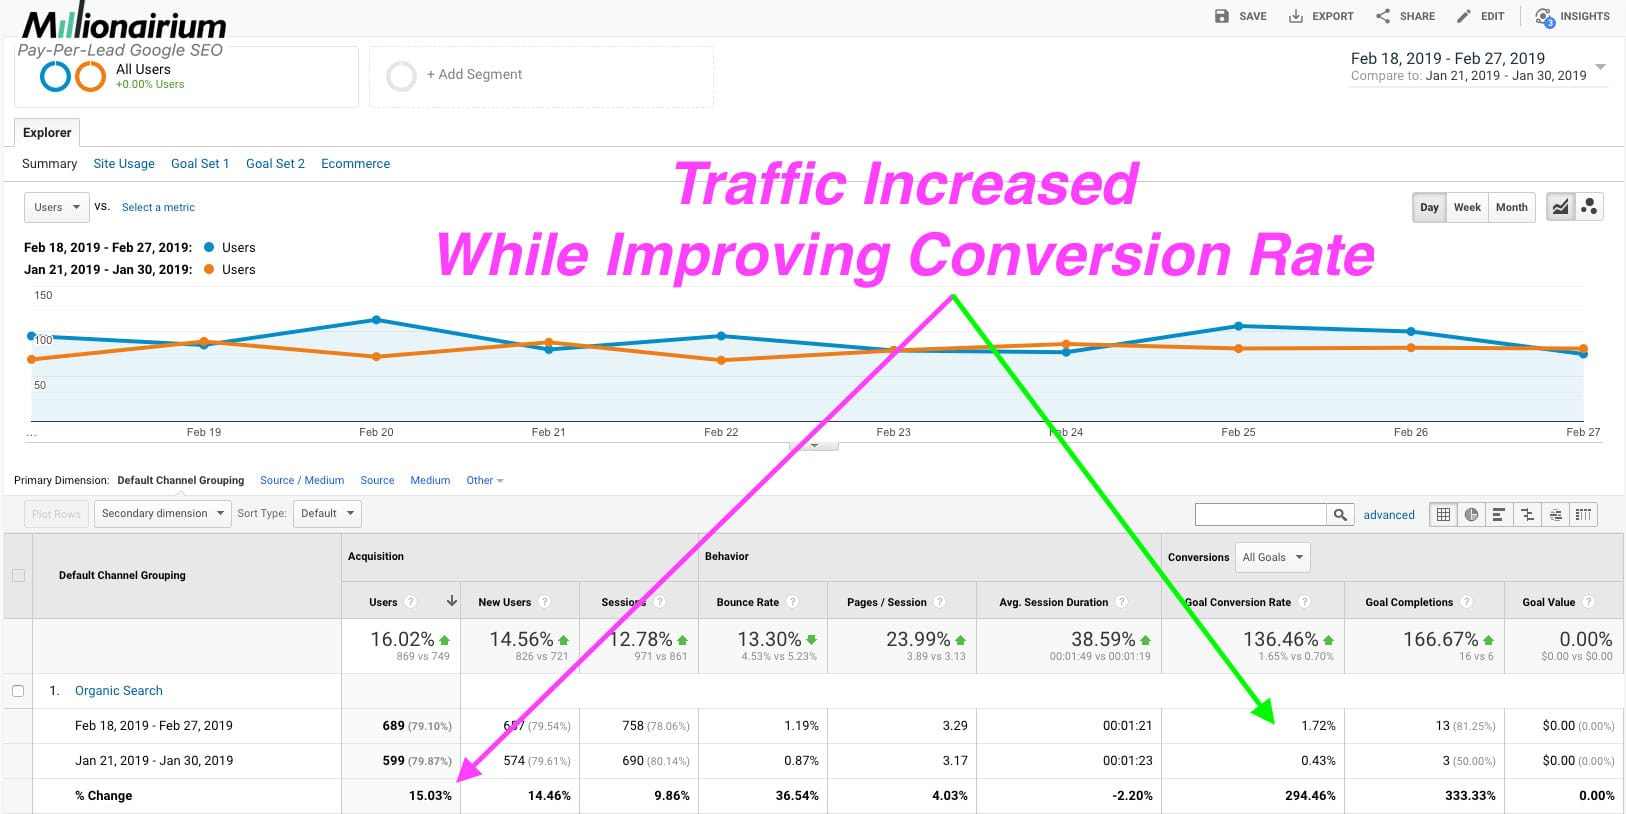 Traffic increased while improving conversion rate